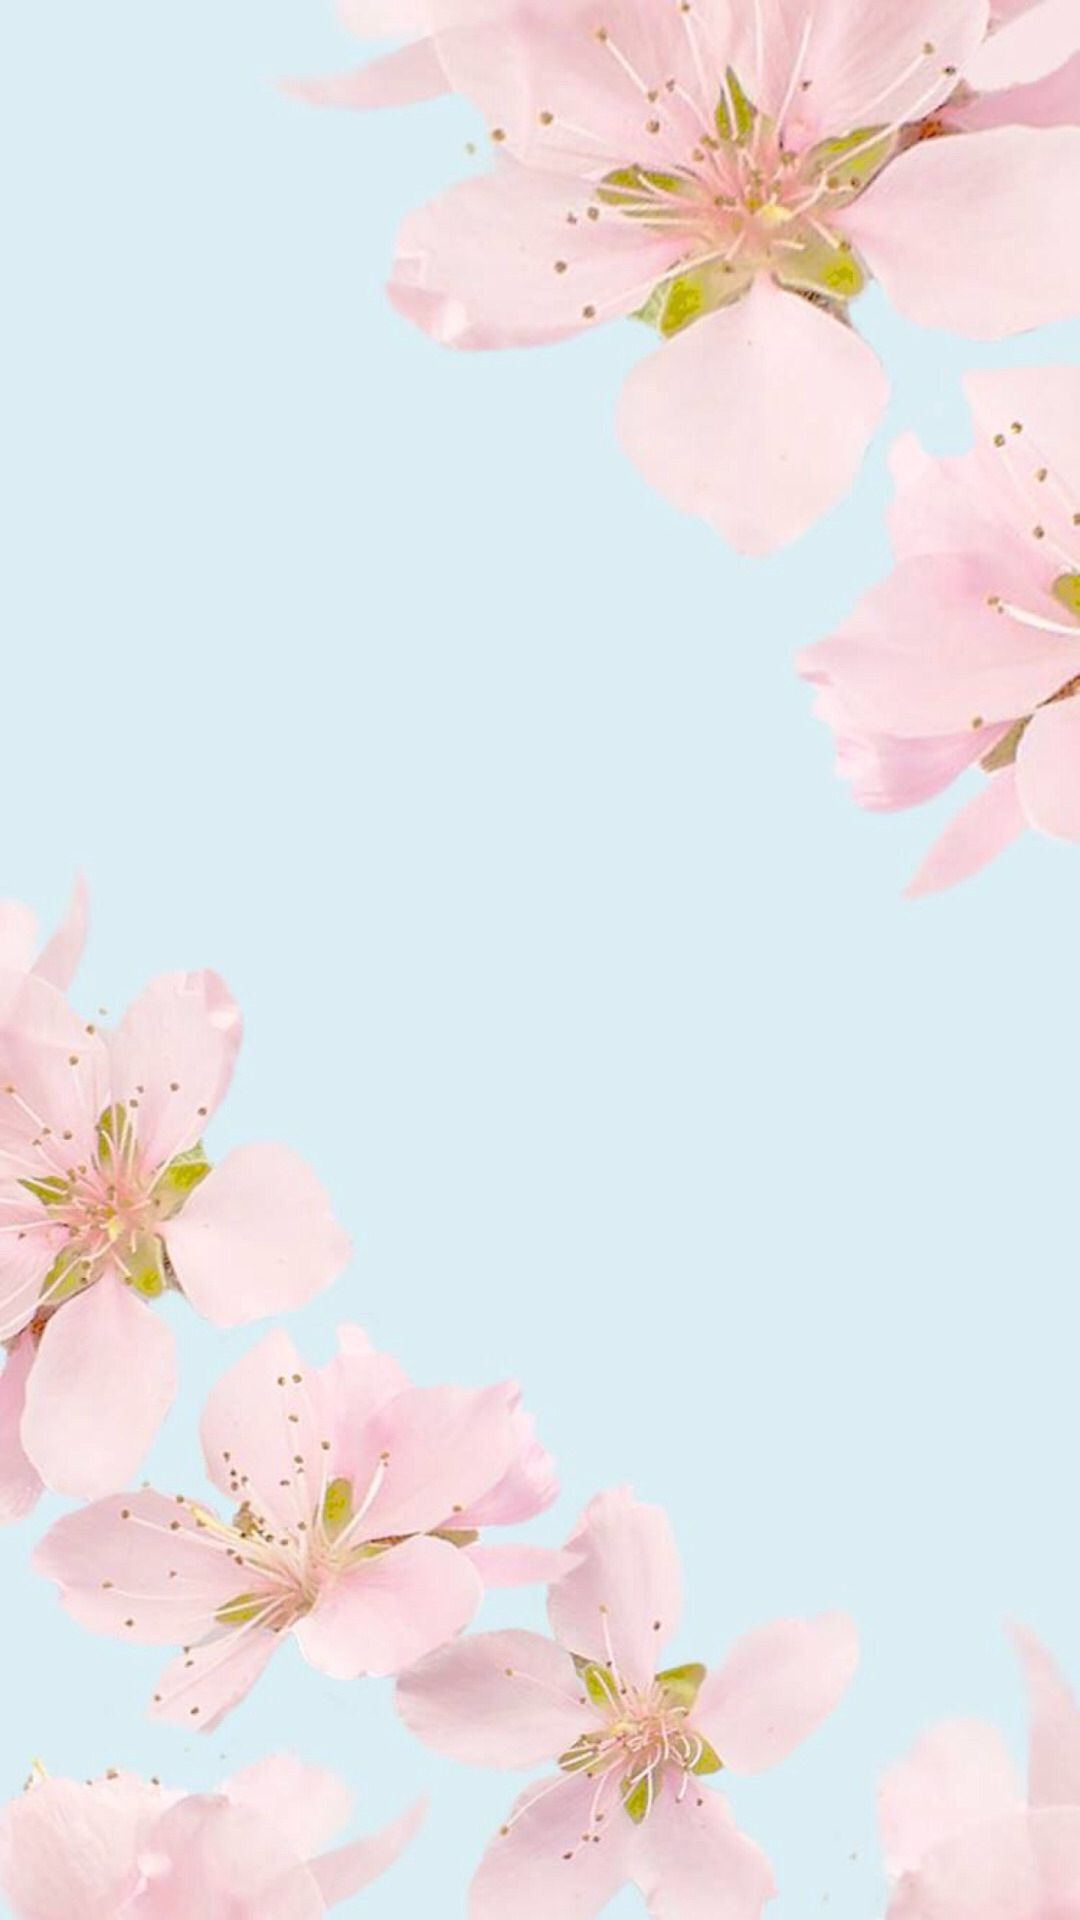 Floral Wallpaper IPhone Pink Flowers Clean Beauty Colour